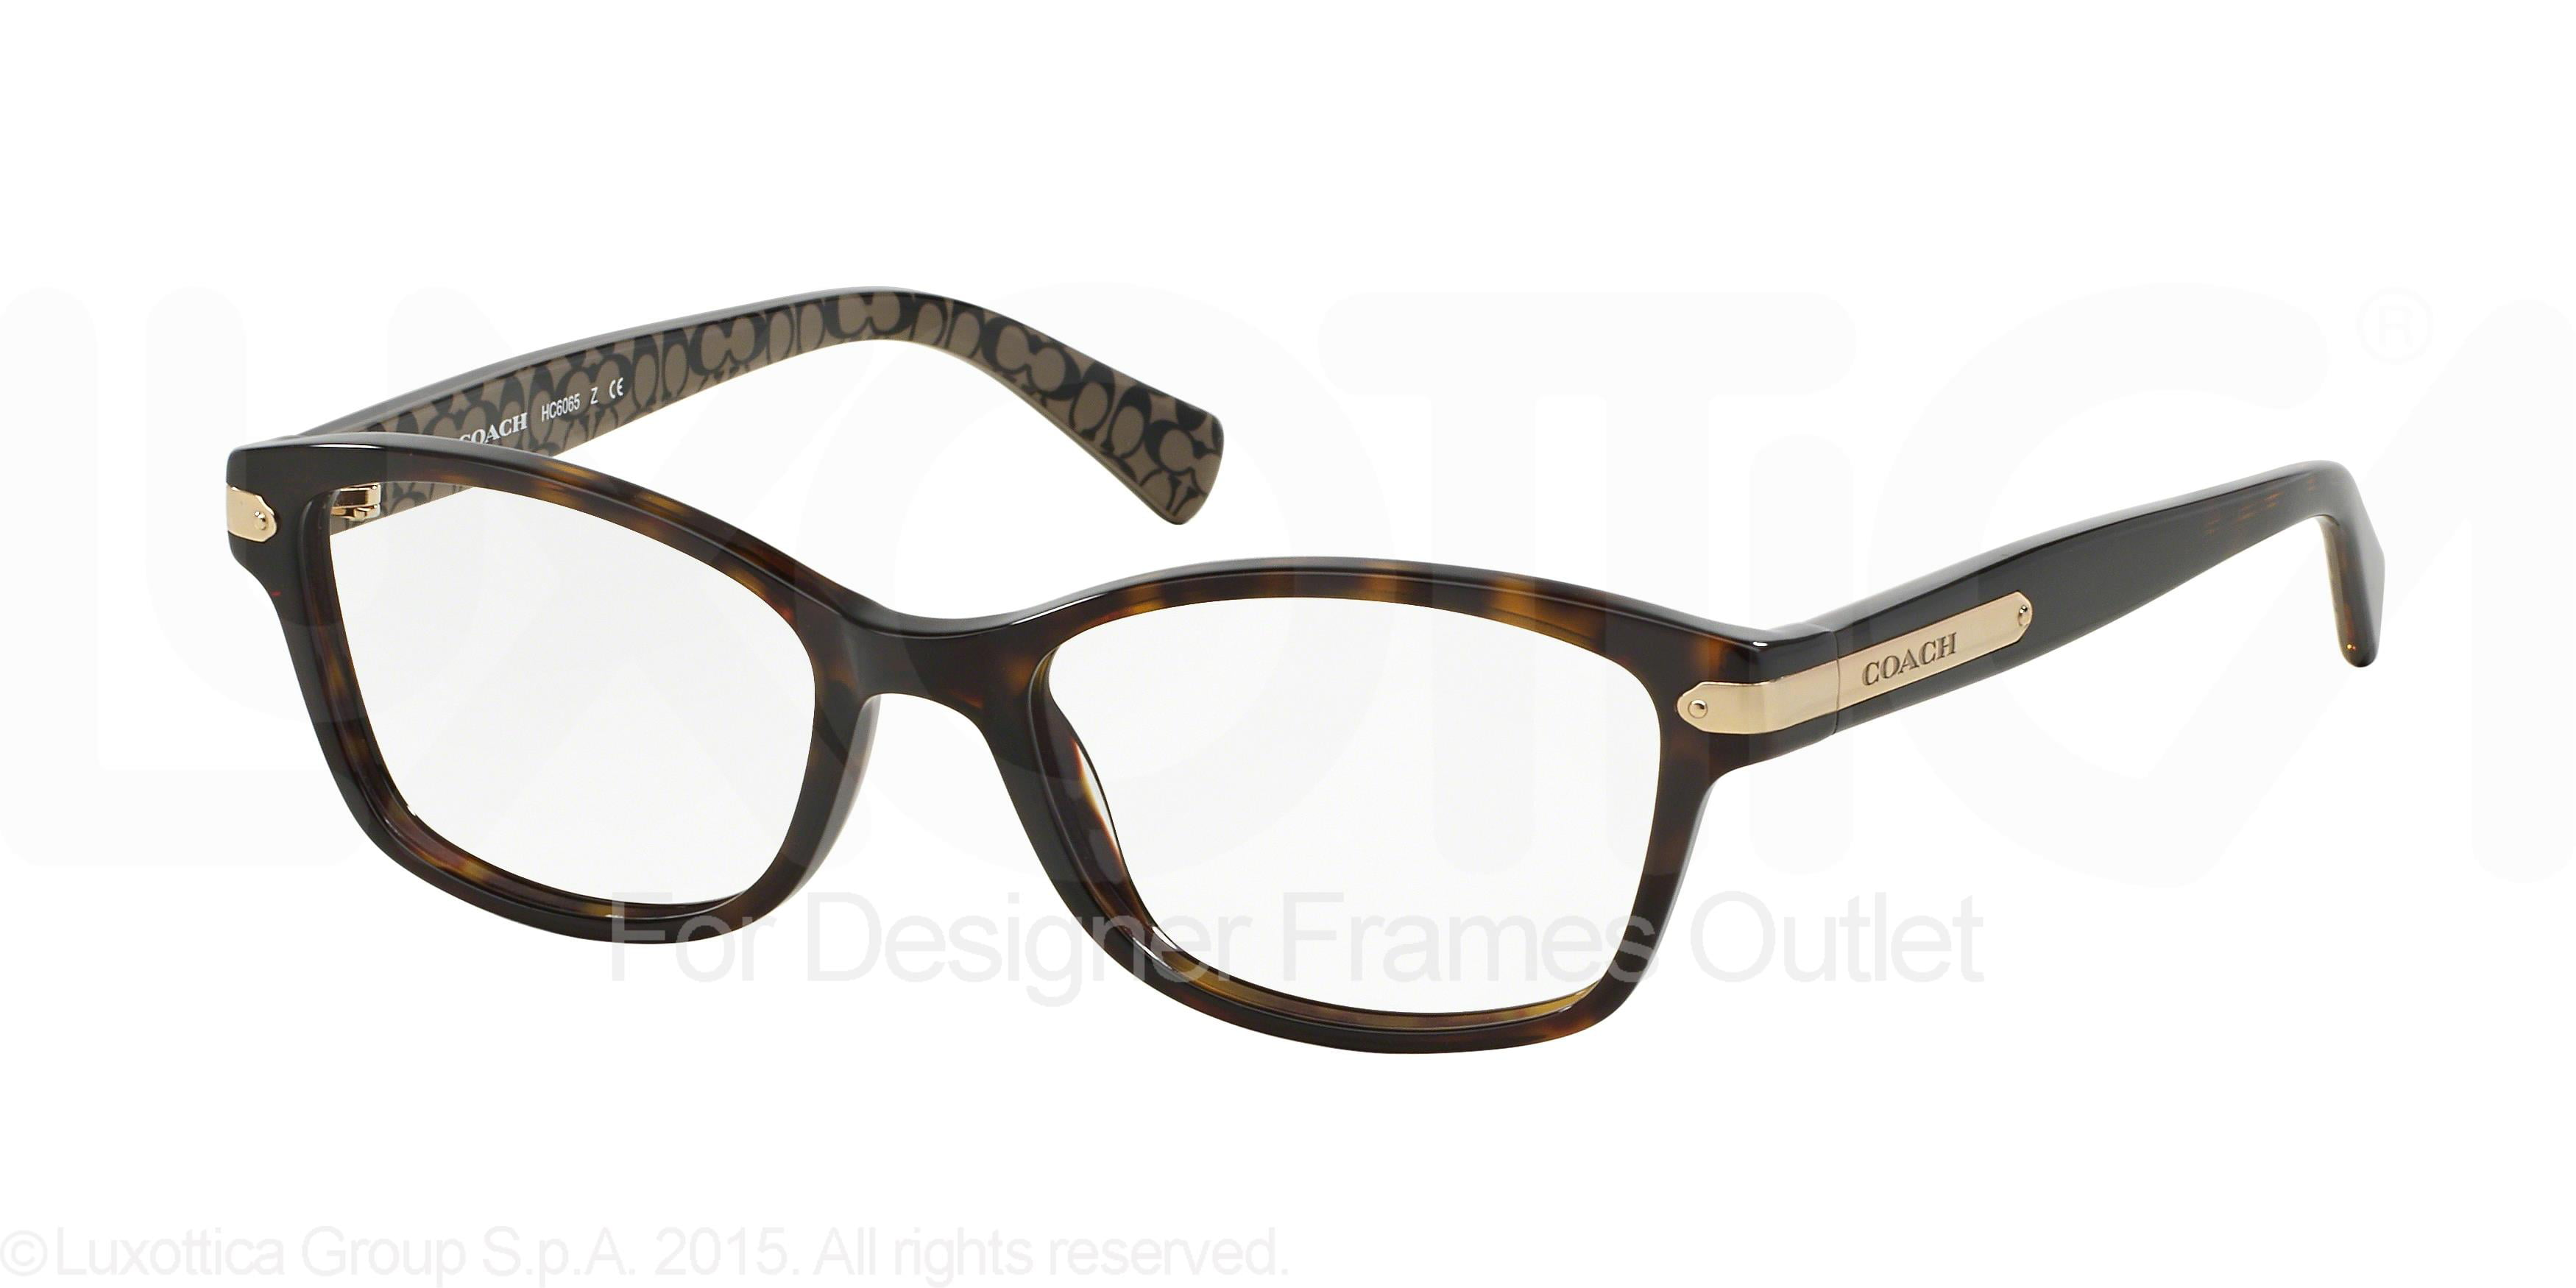 COACH Eyeglasses HC6065 5291 Tortoise/Tortoise Military 51MM ...